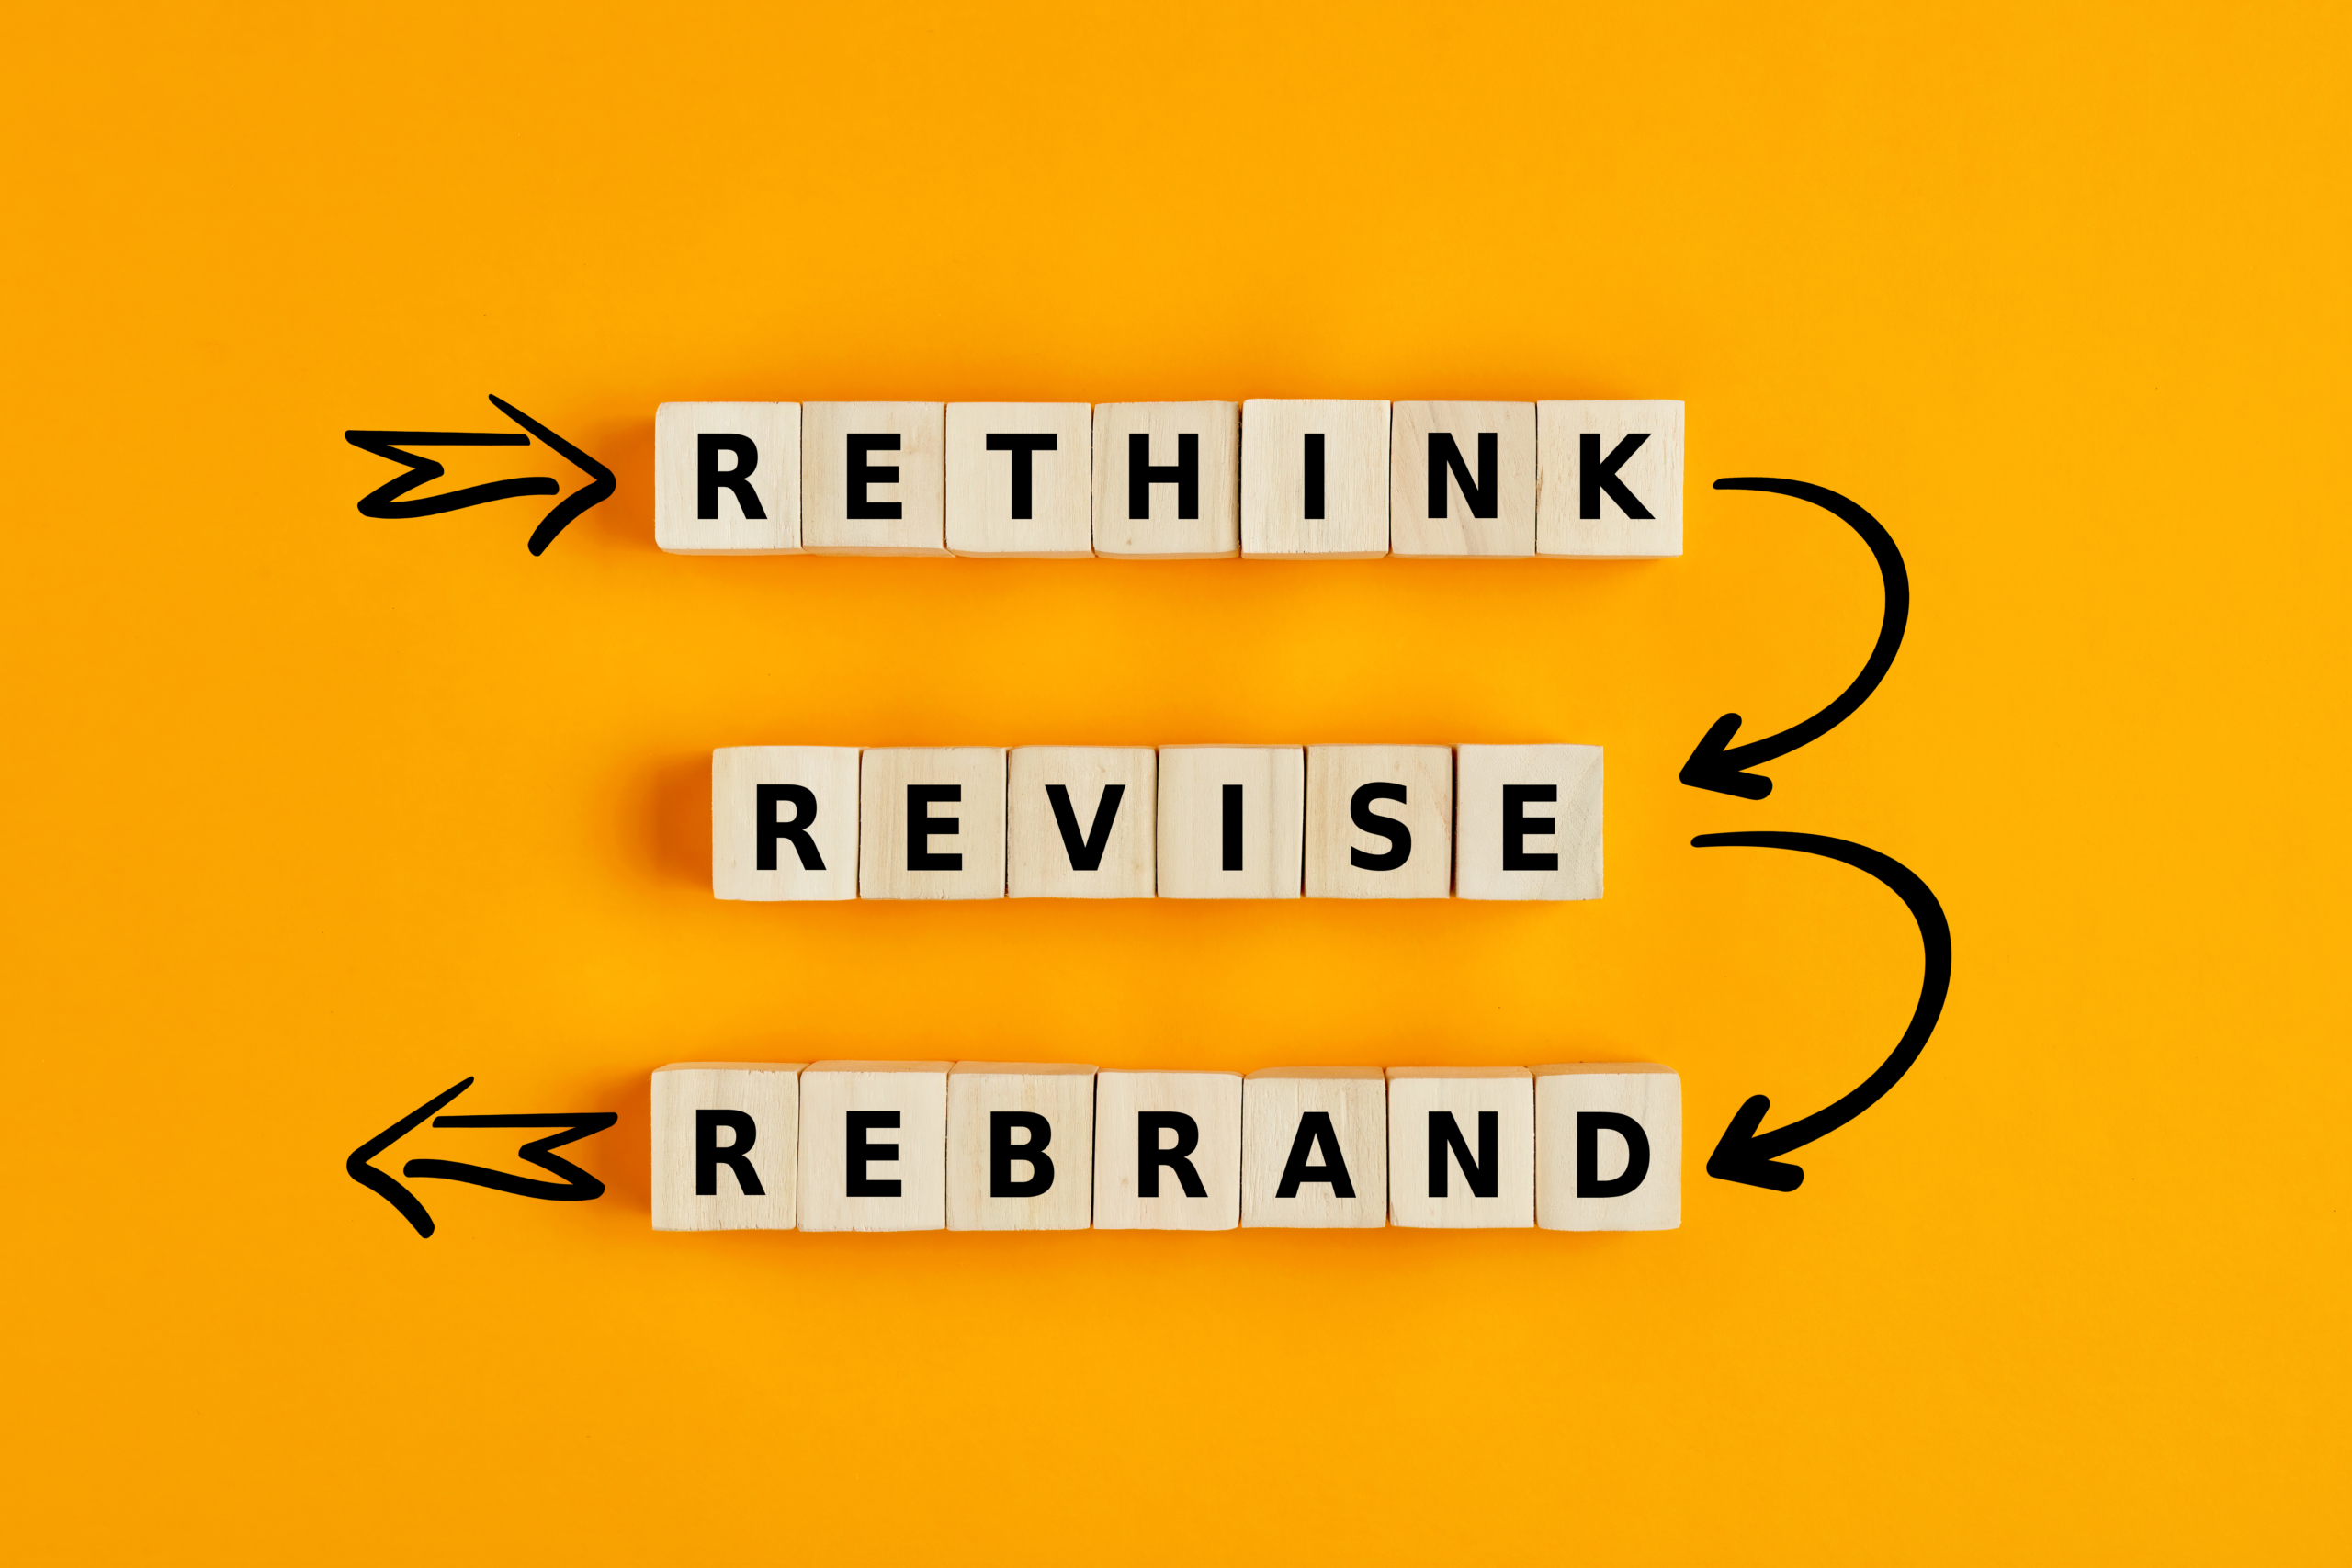 Rebrand your business